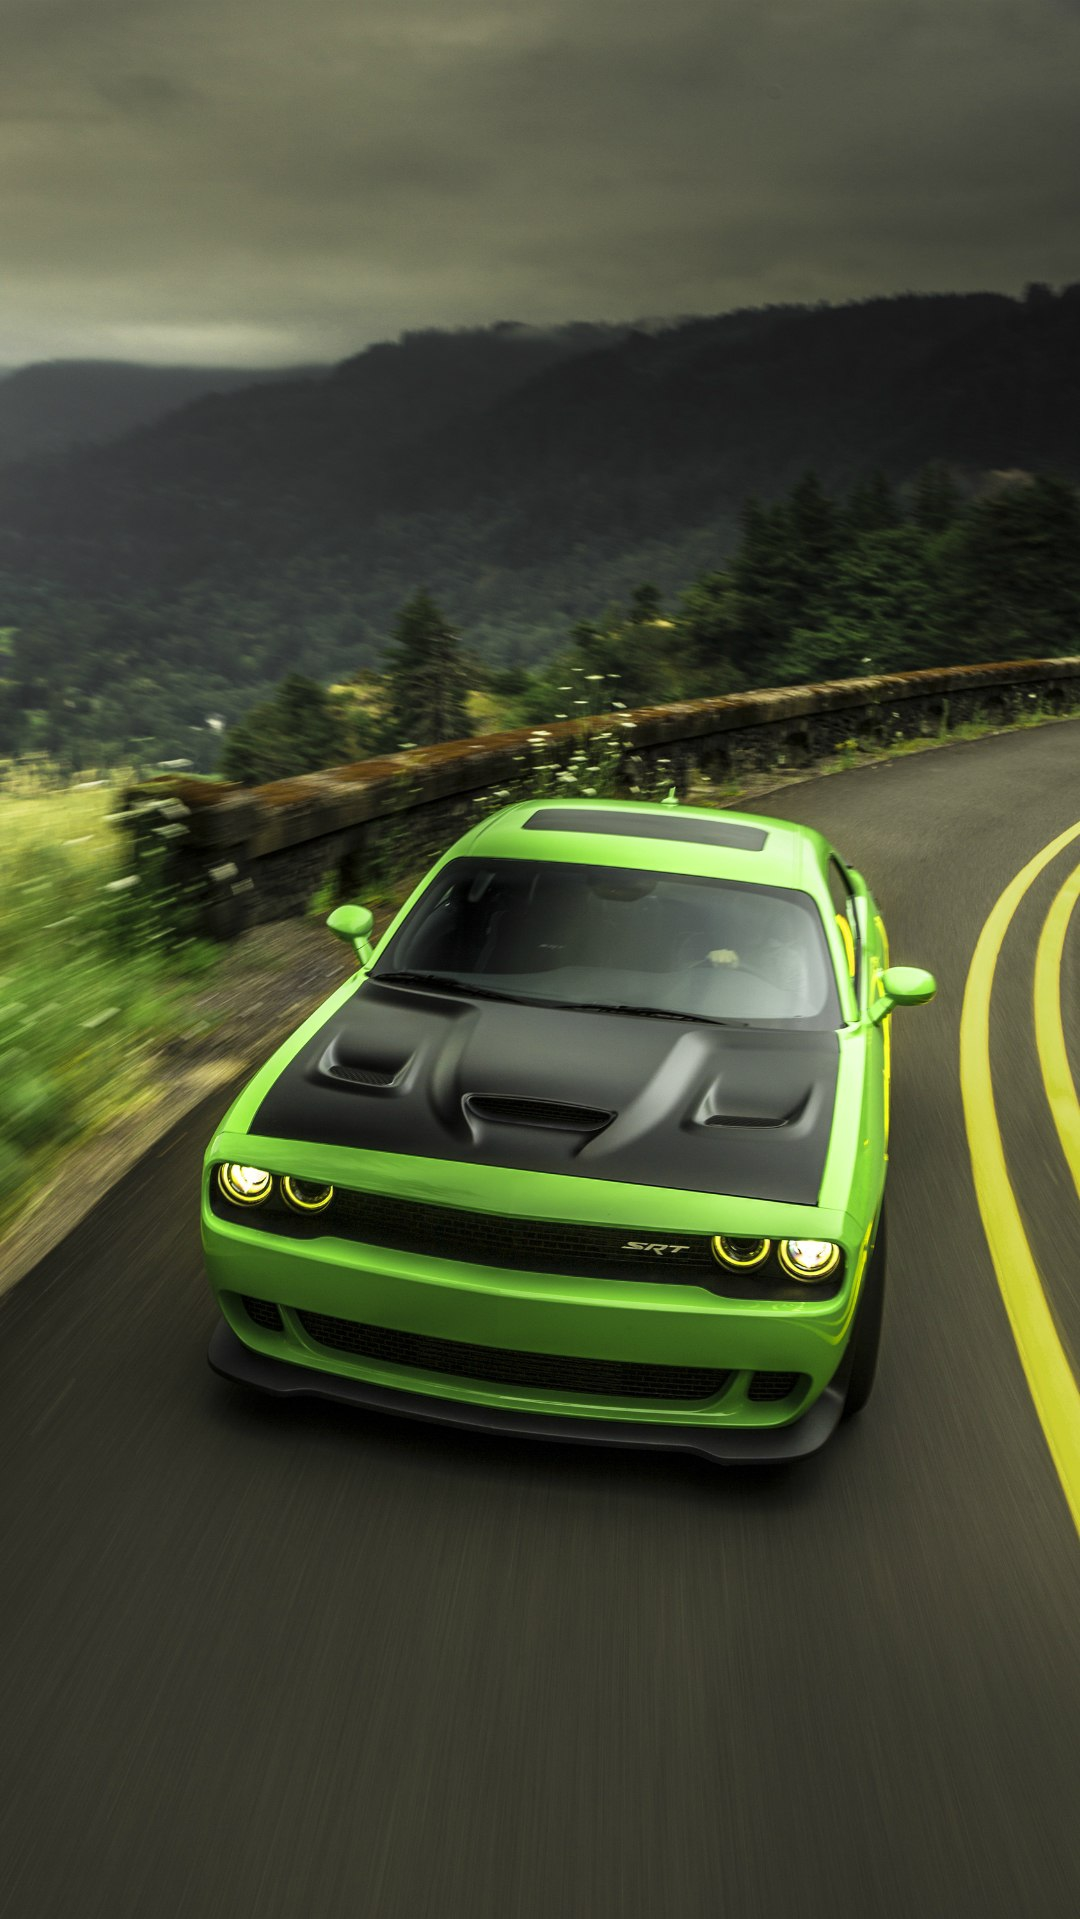 Hd Nfs Cars Wallpapers Dodge Challenger Srt Green Iphone Wallpaper Iphone